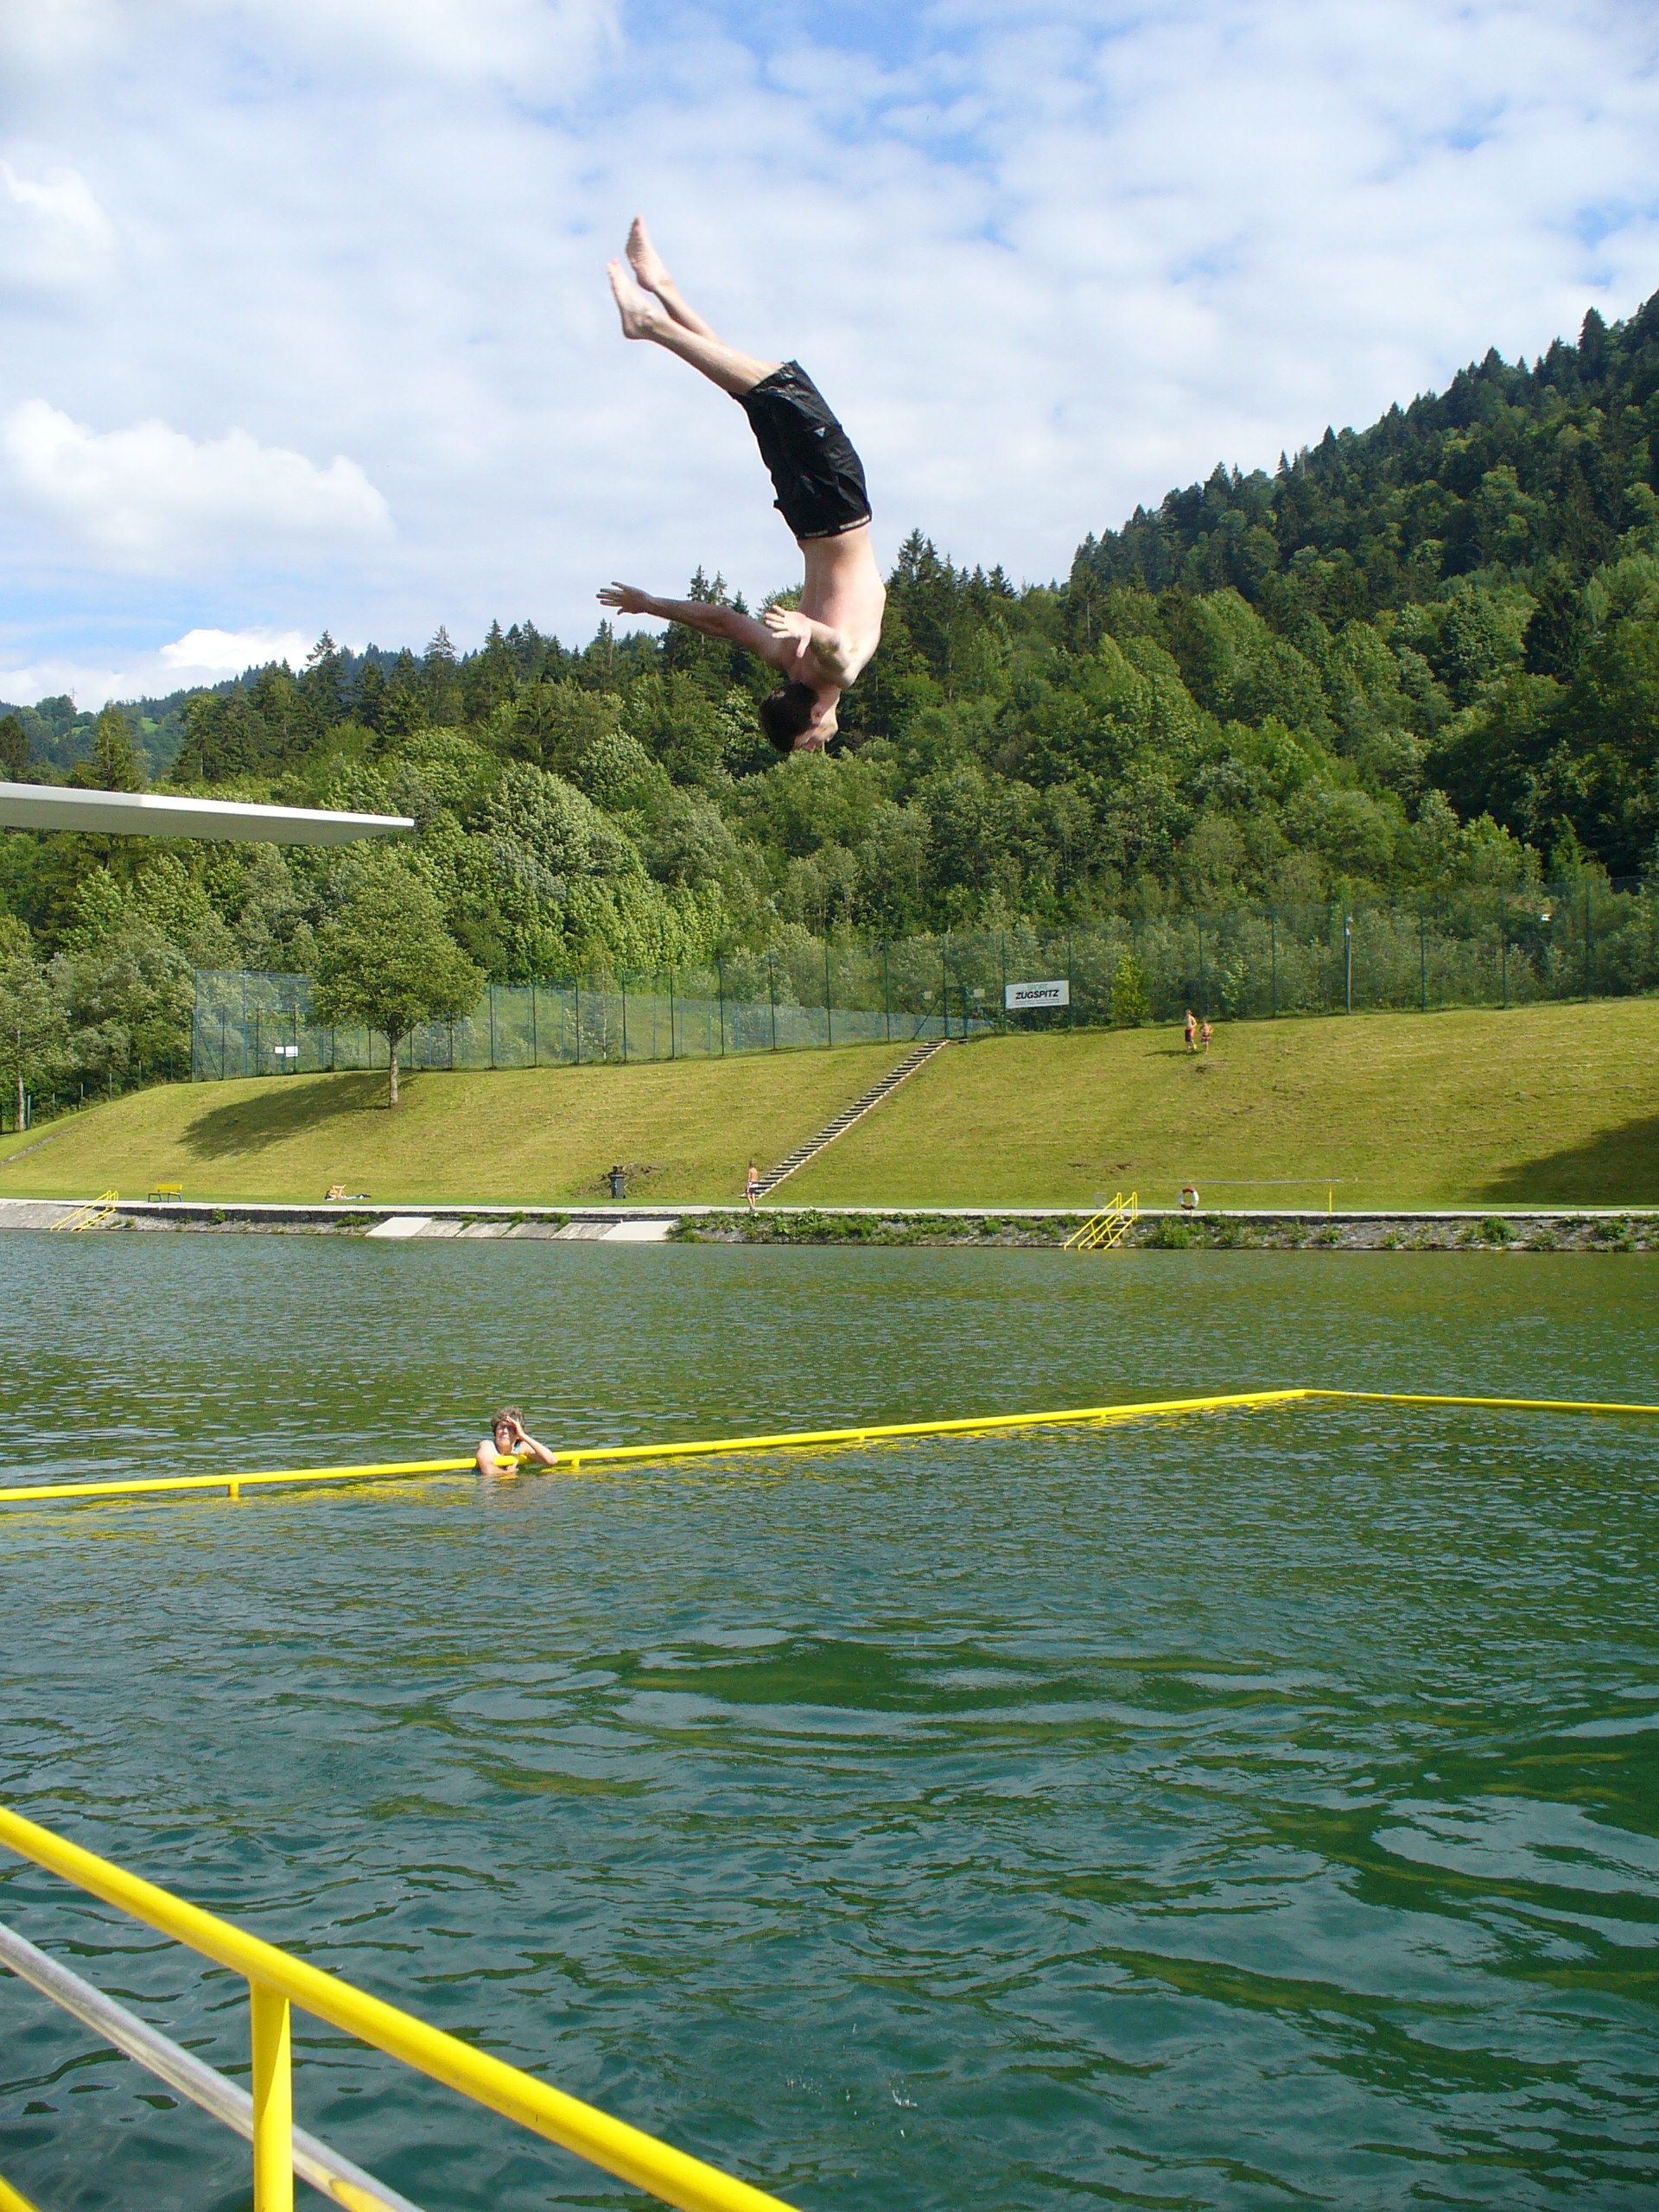 Me doing a backflip off the High Dive in a pool at the base of a mountain in the Austrian Alps